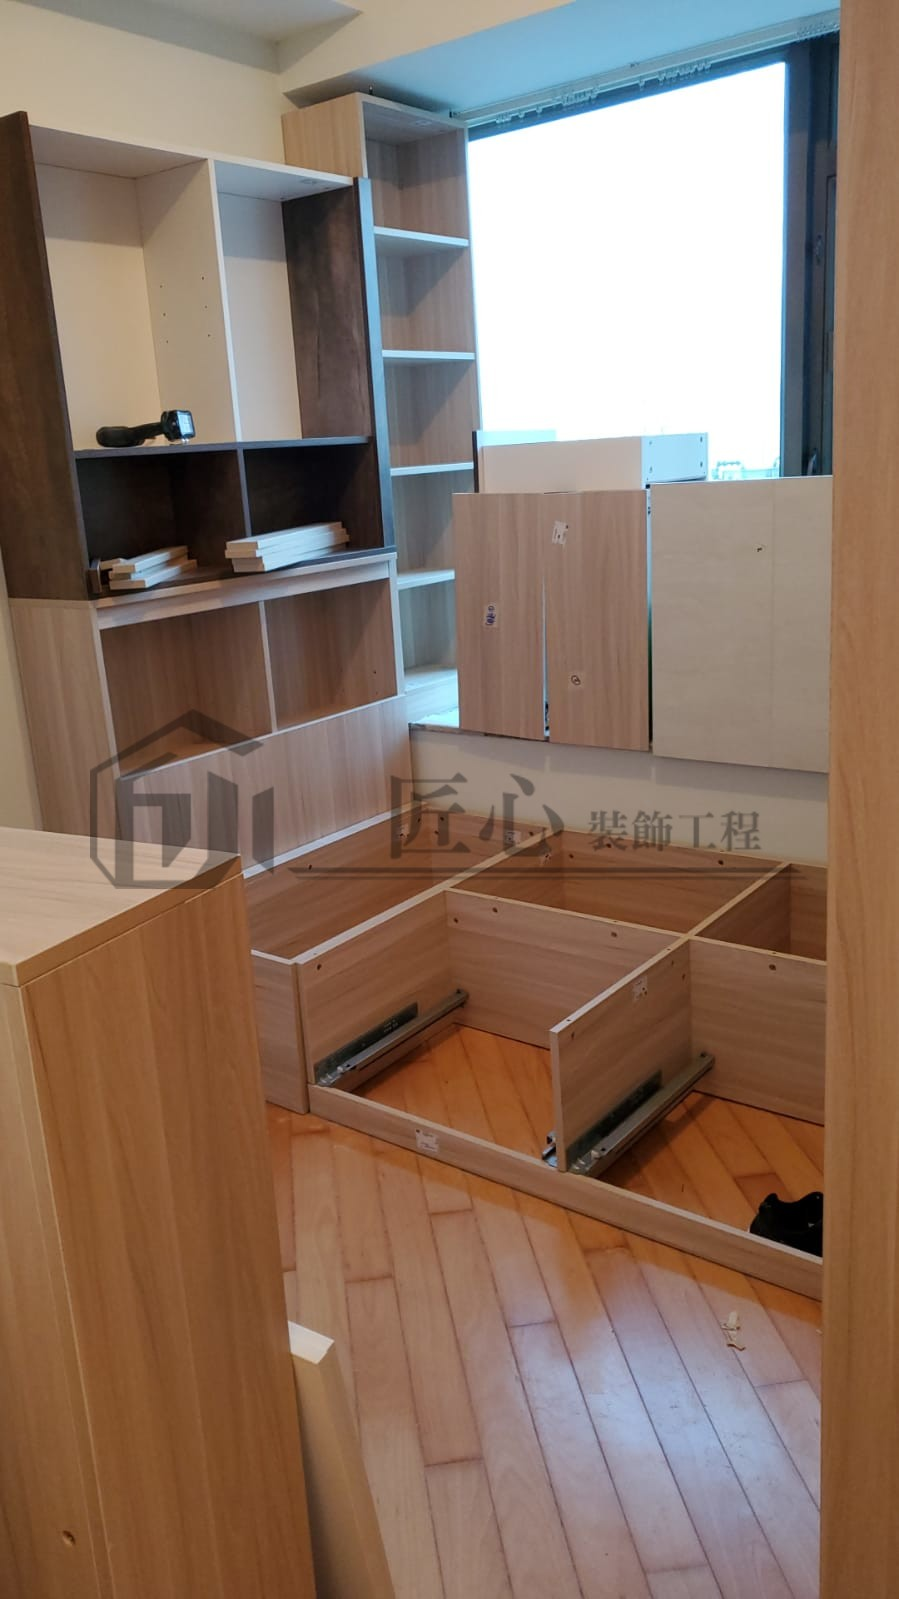 Chest of Drawers - Floor